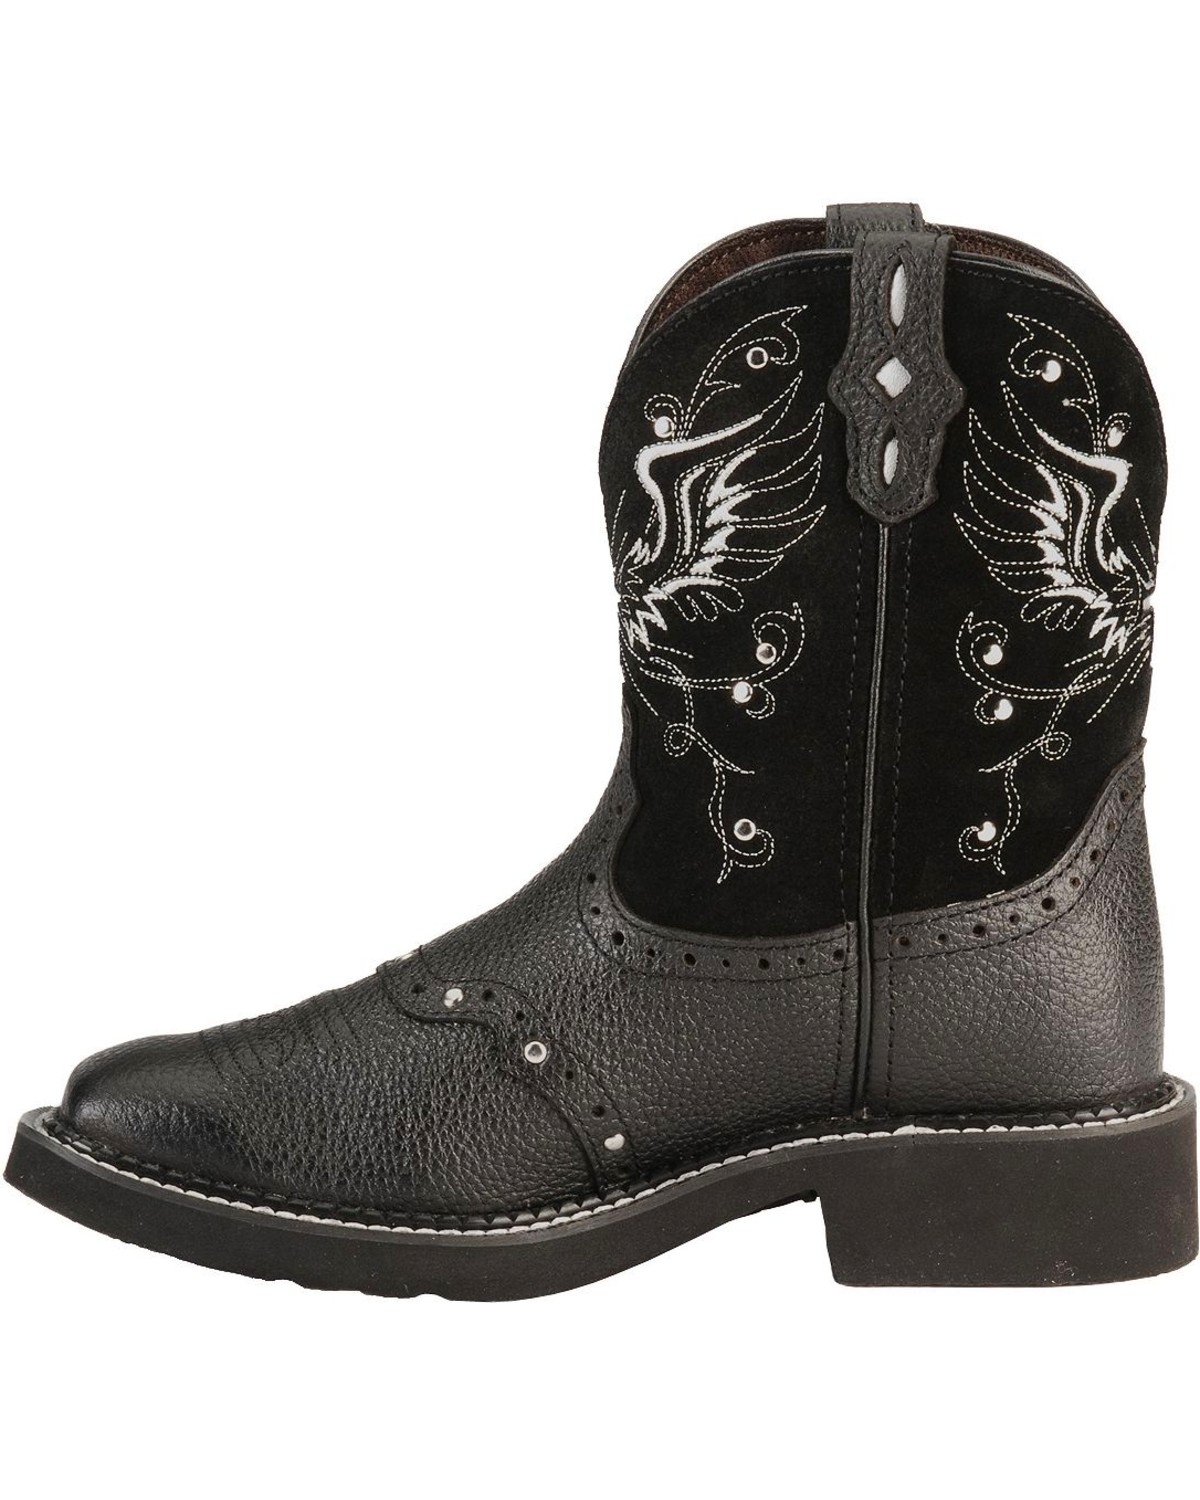 Cowboy womens boots black recommend dress for on every day in 2019